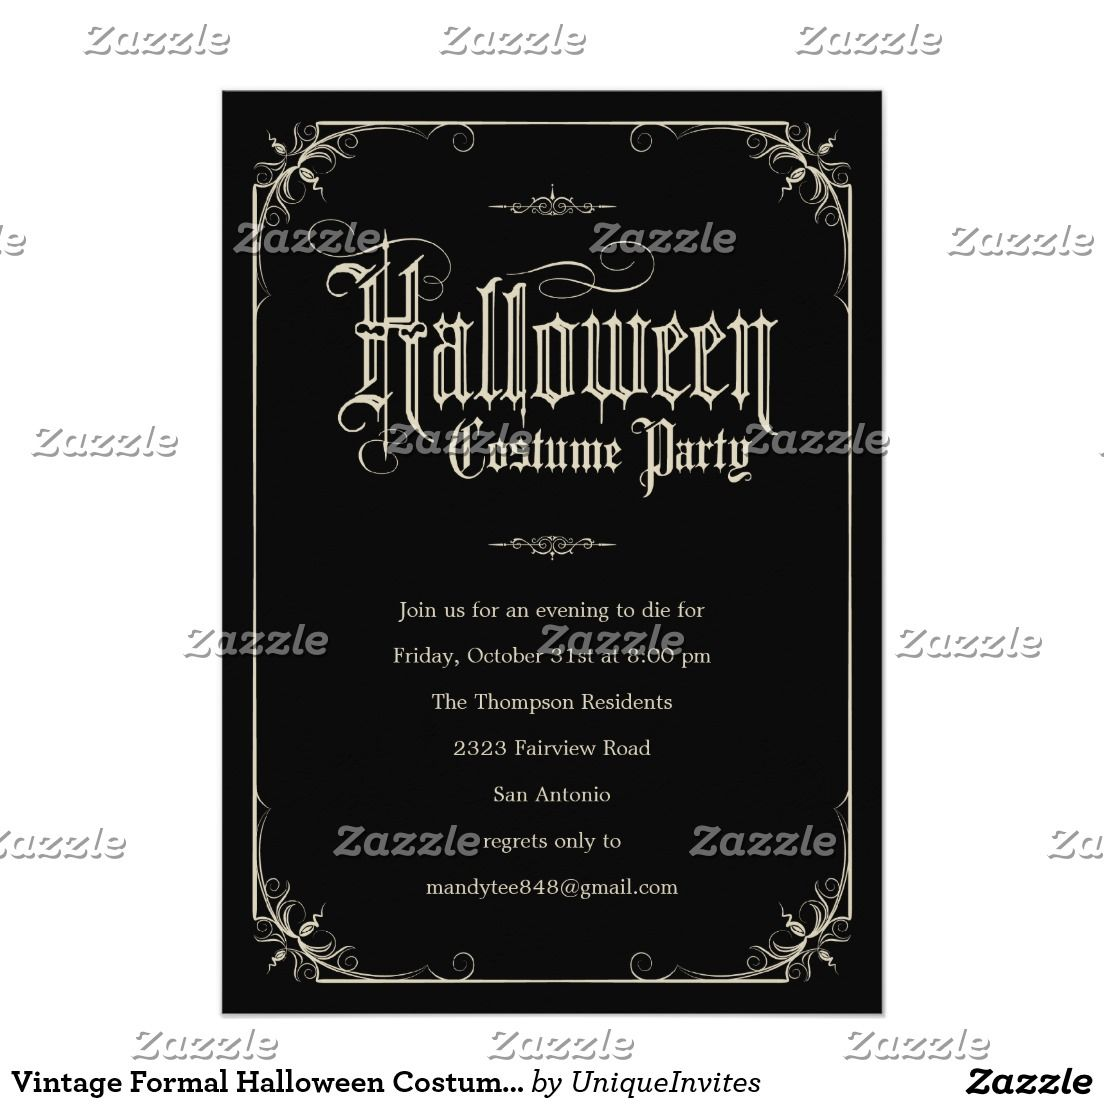 Halloween Costume Party Invitation 2020 Vintage Formal Halloween Costume Party Invitations | Zazzle.co.uk